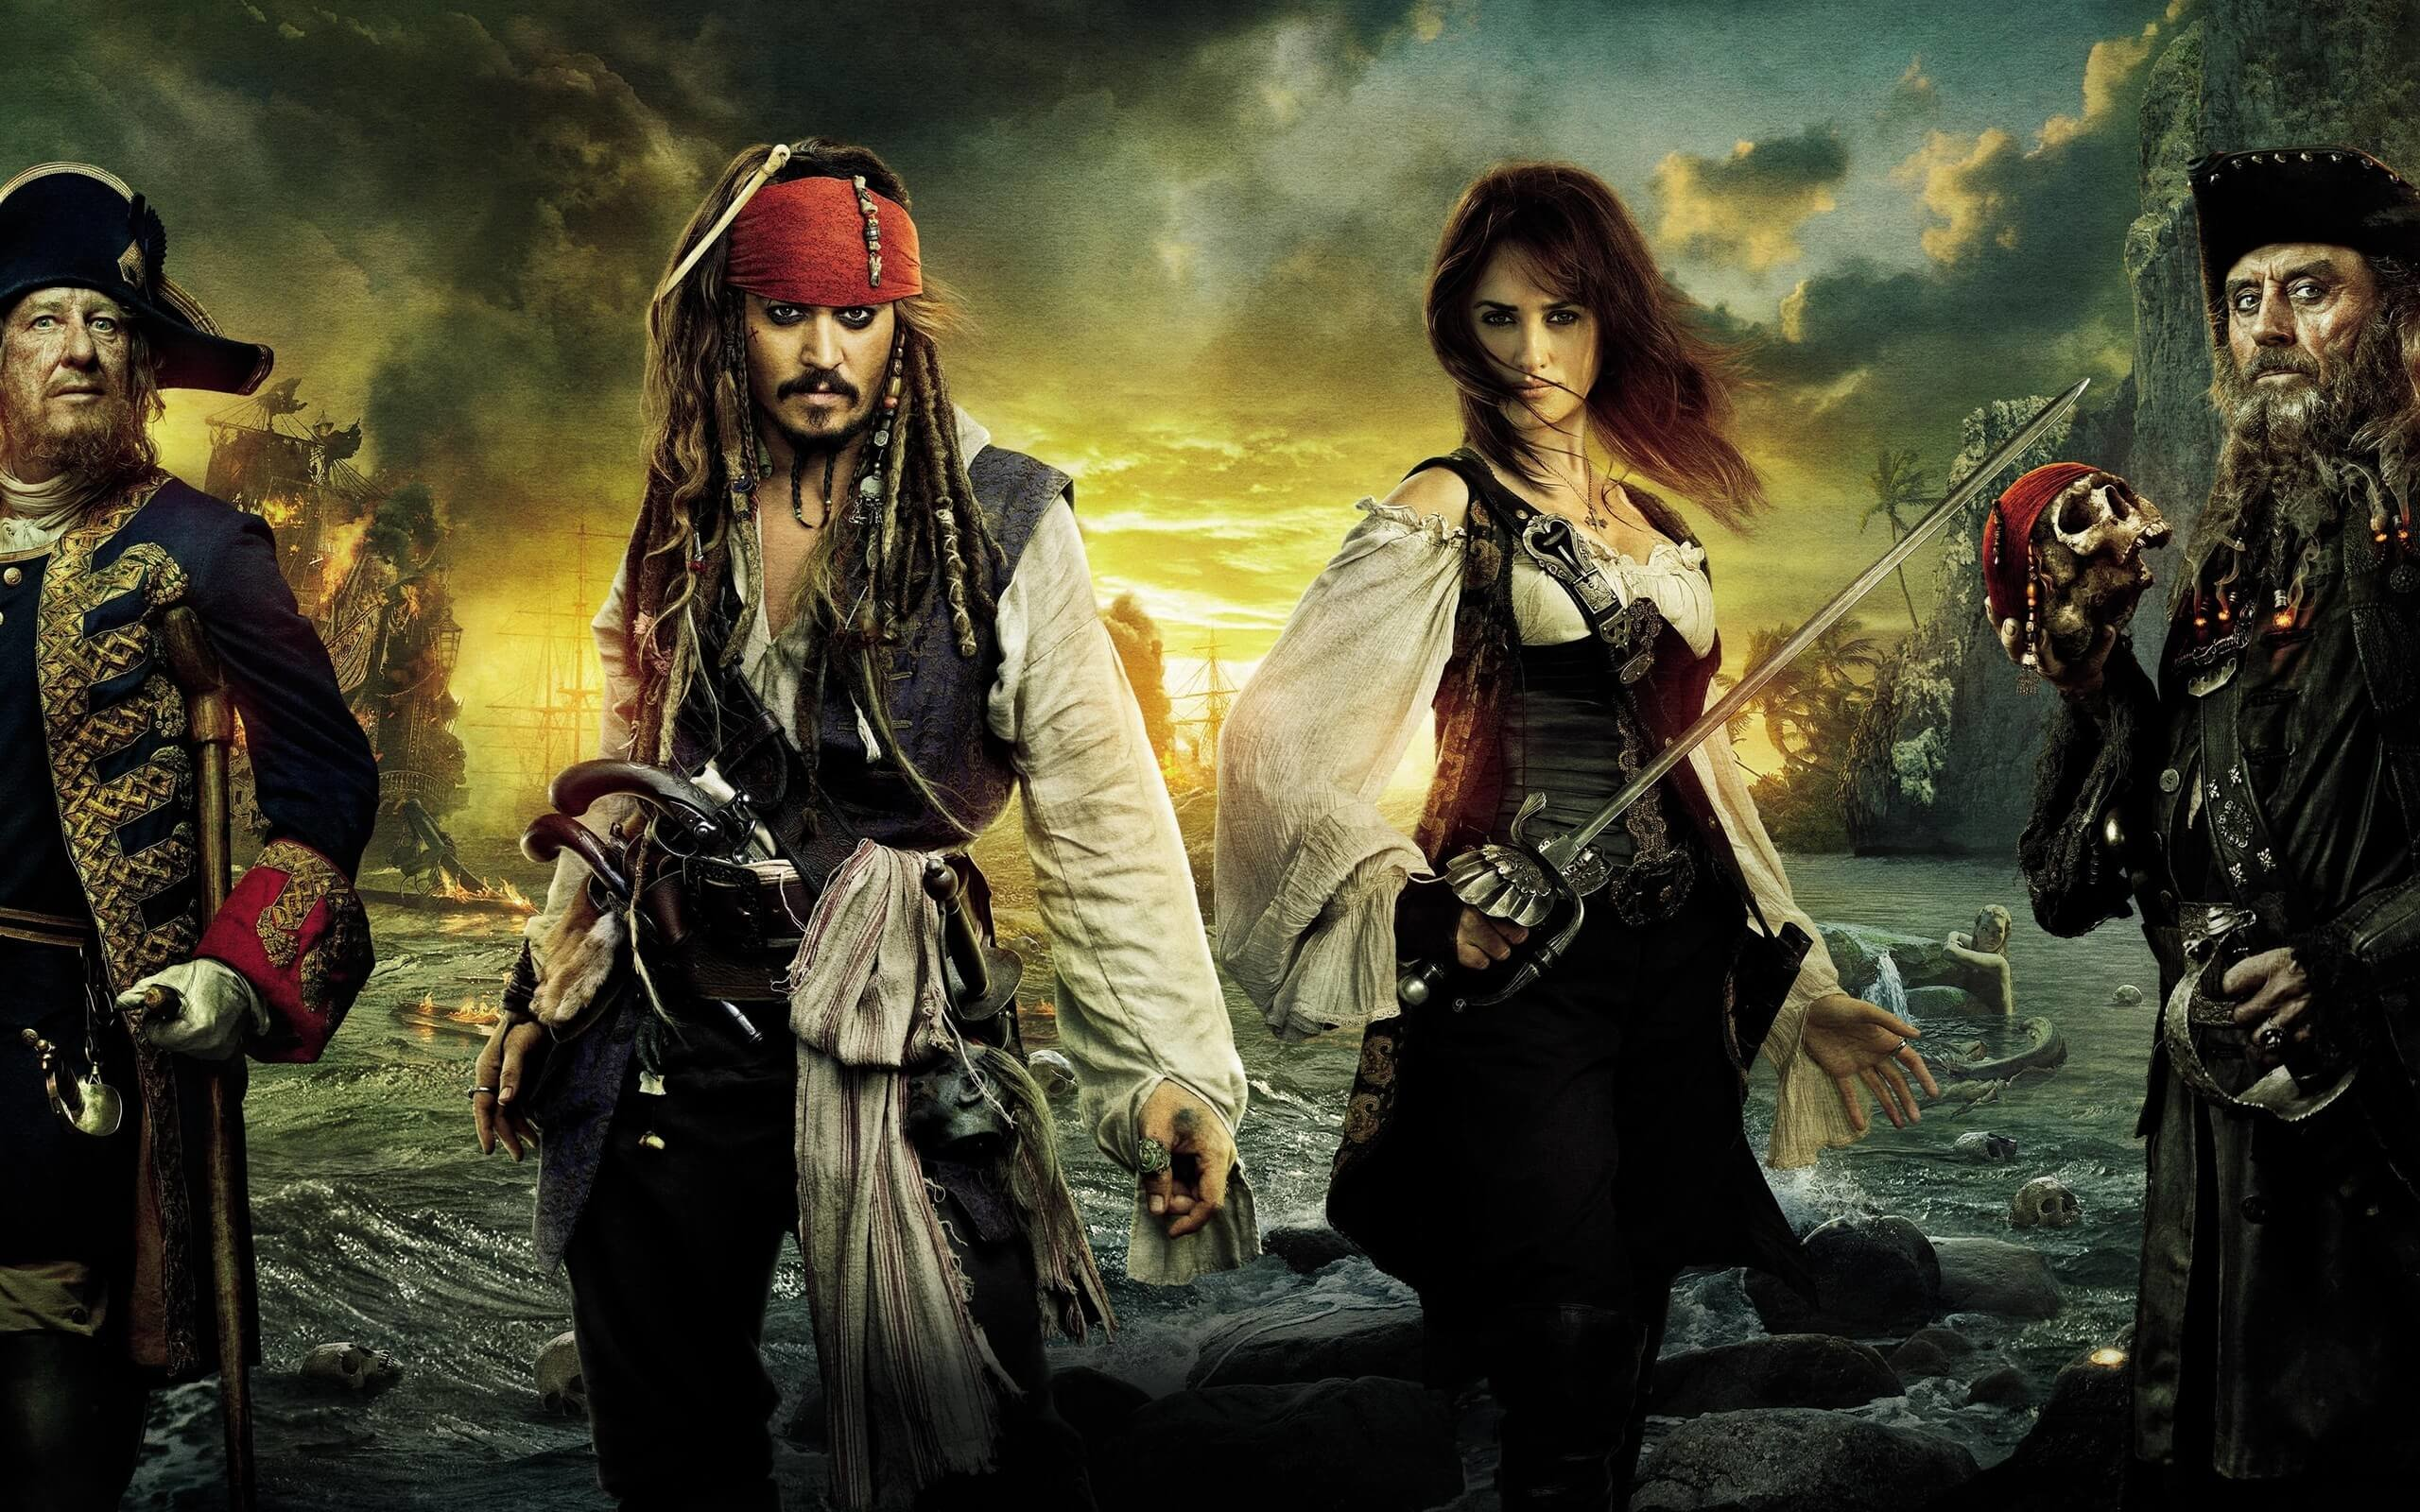 Pirates of the Caribbean: On Stranger Tides Characters Wallpaper for Desktop 2560x1600